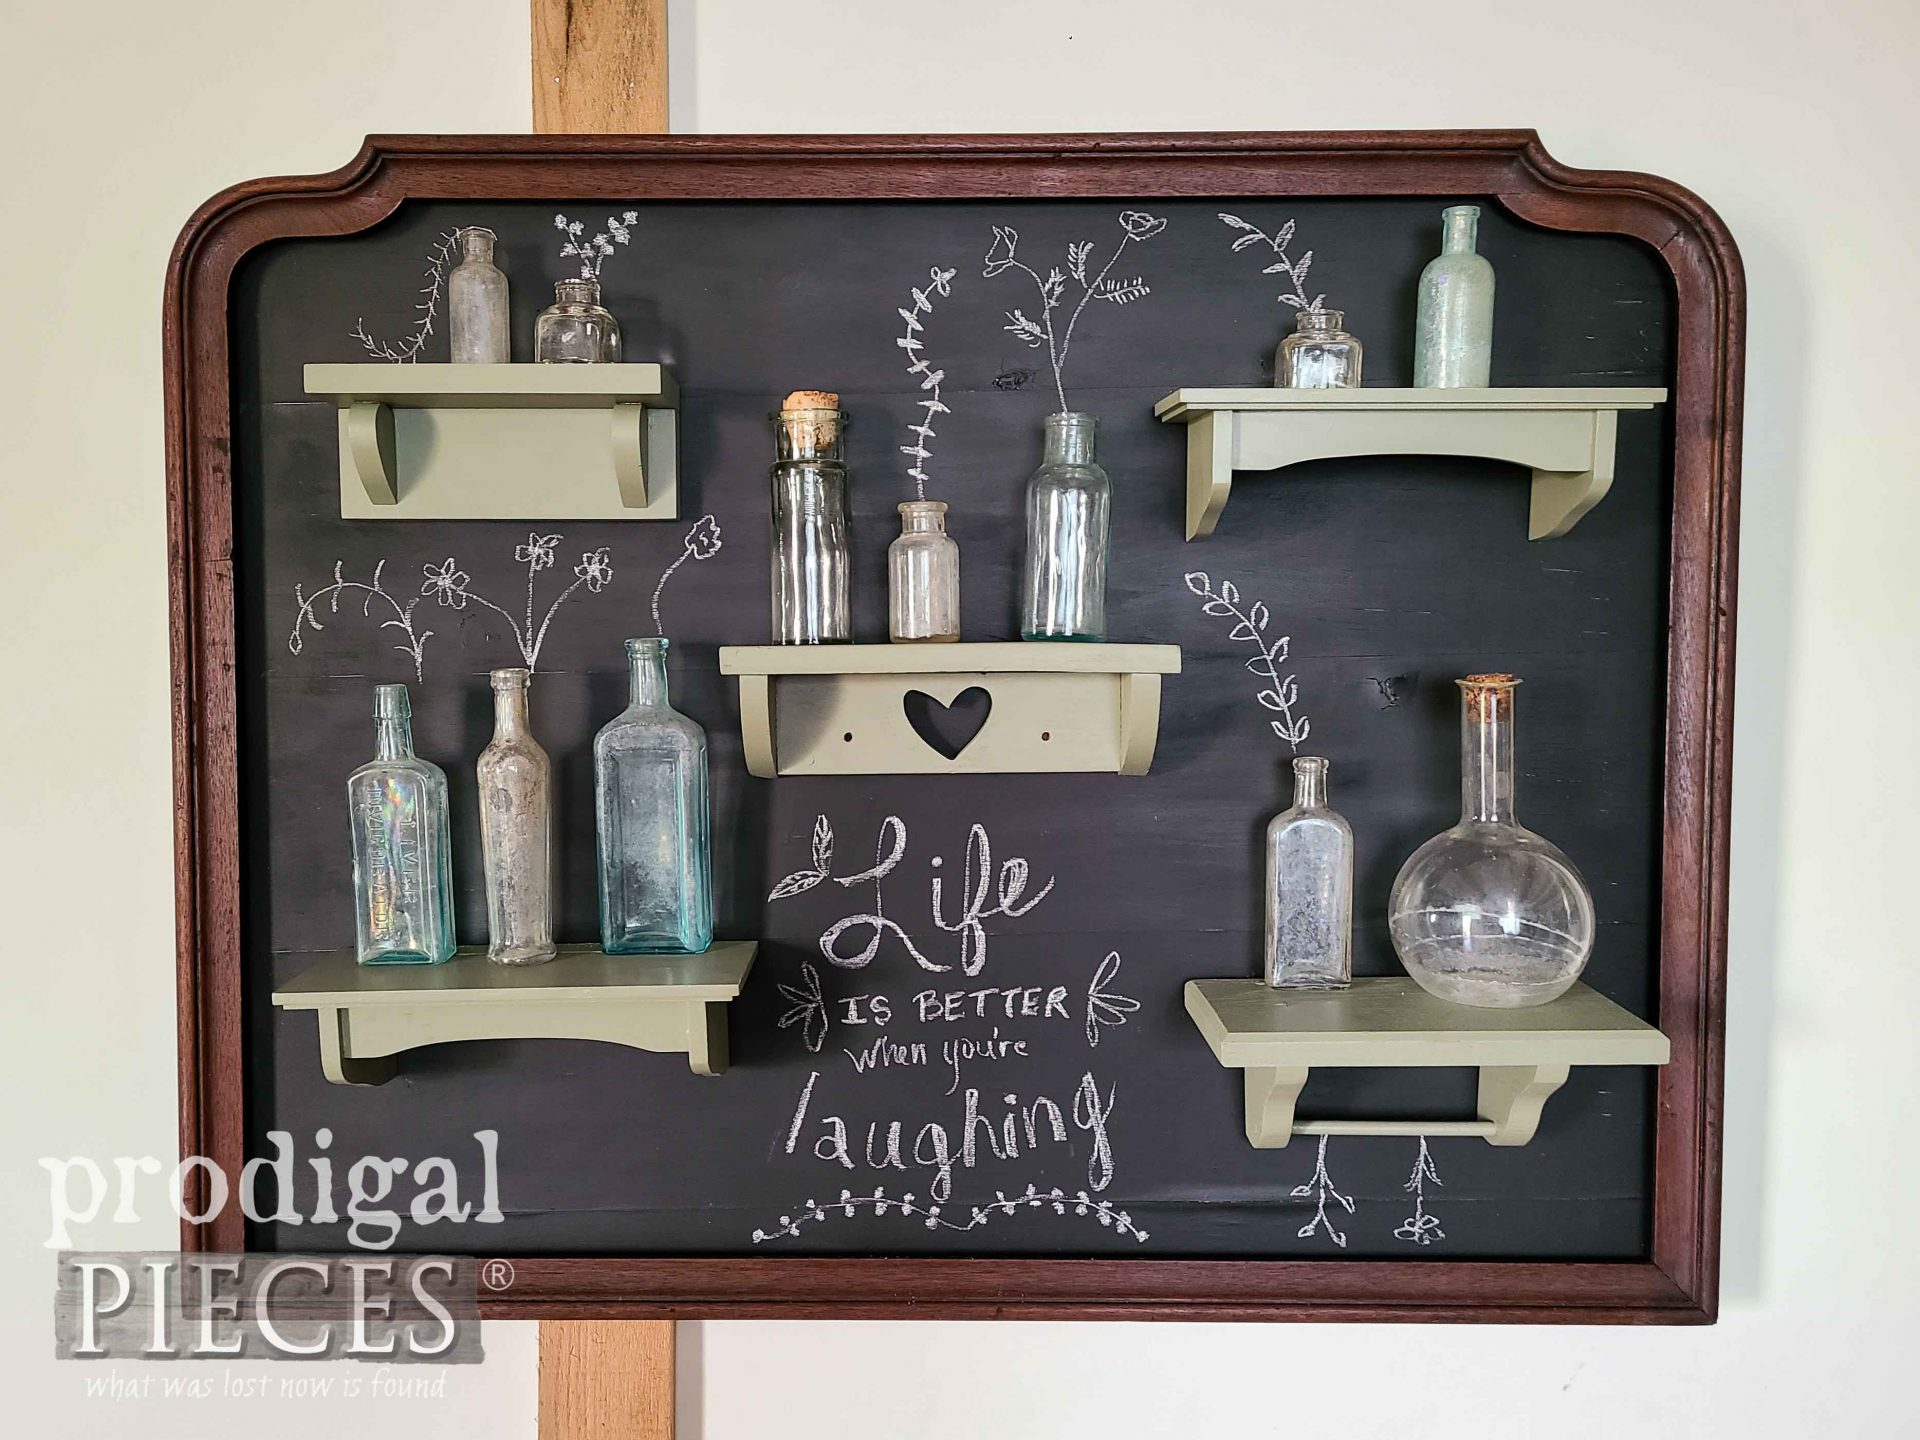 Chalkboard Style Wall Art with Typography by Larissa of Prodigal Pieces | prodigalpieces.com #prodigalpieces #diy #chalkboard